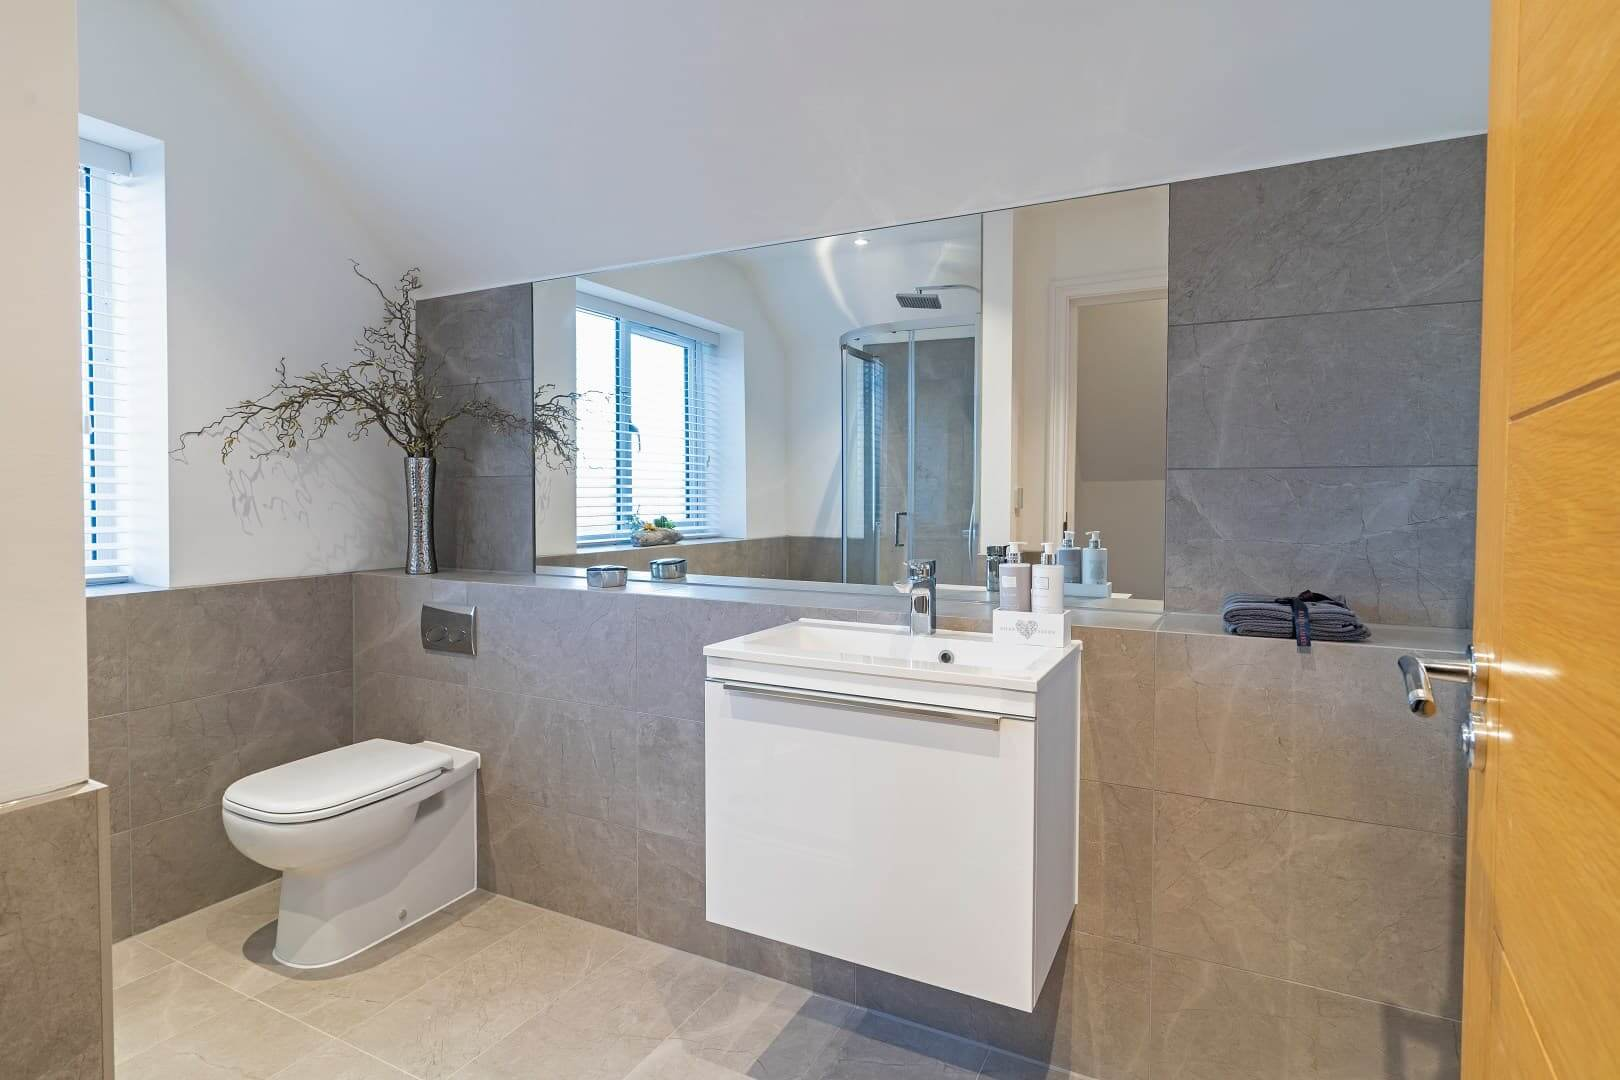 The_Ridings_bathrooms-1